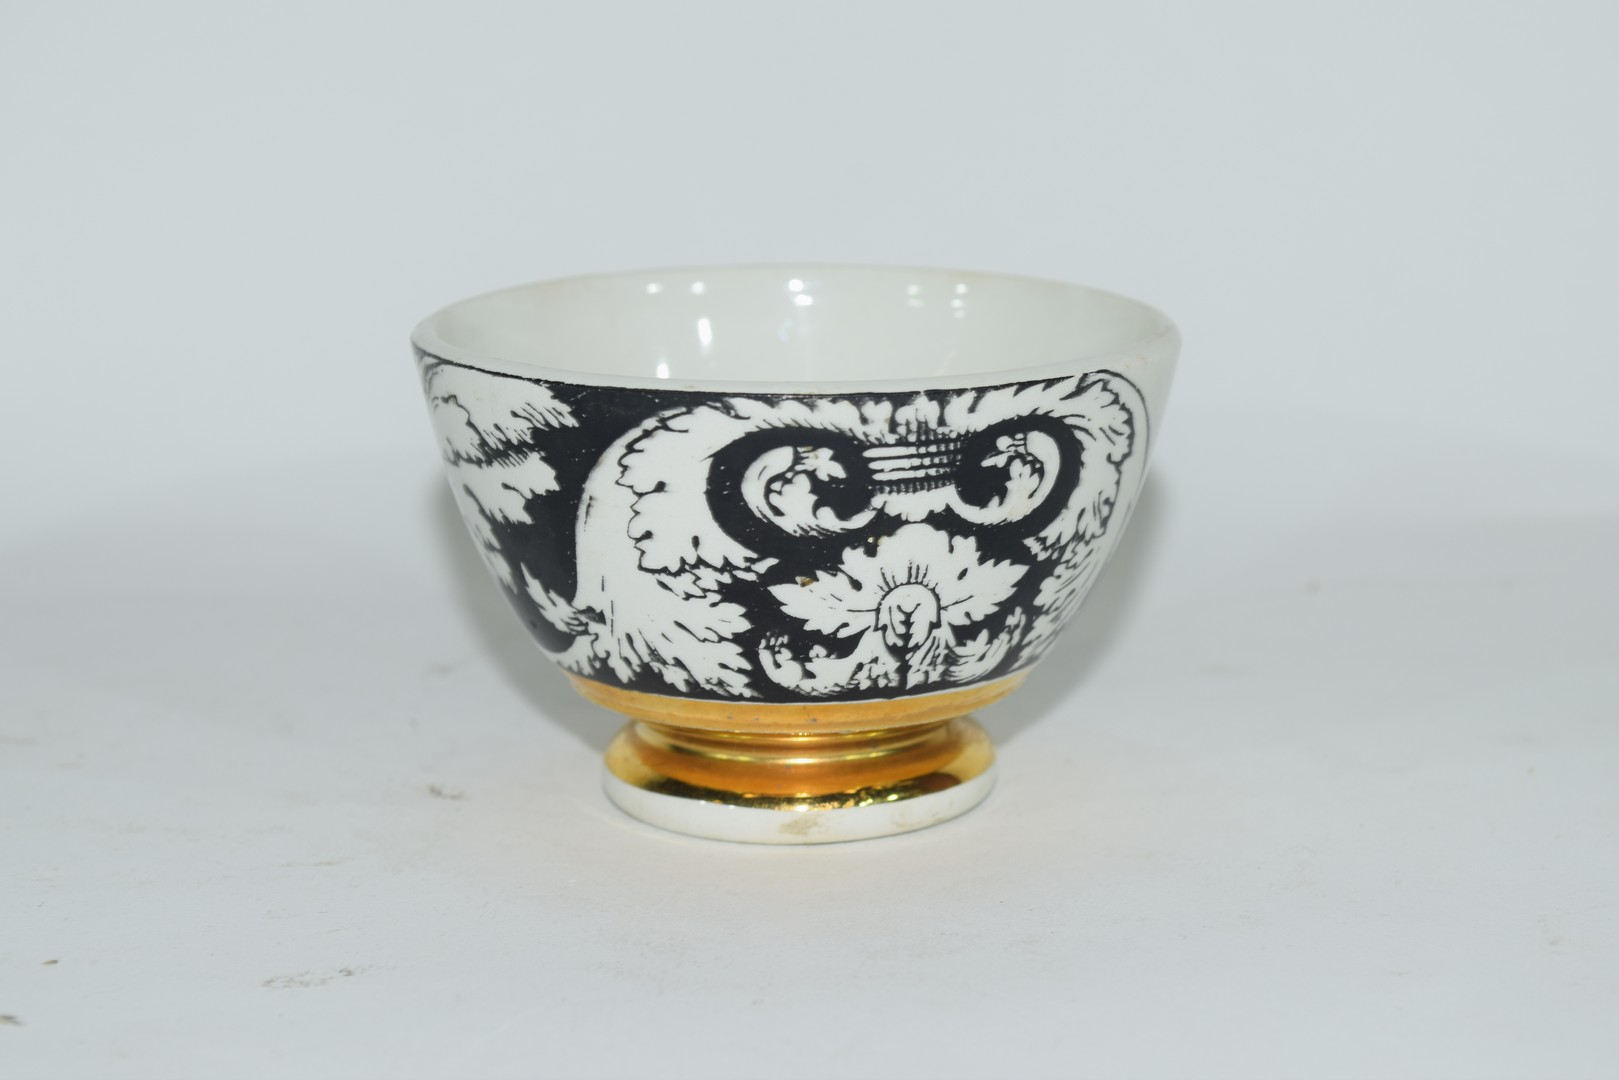 Small bowl decorated in black and white with a design by Fornisetti,